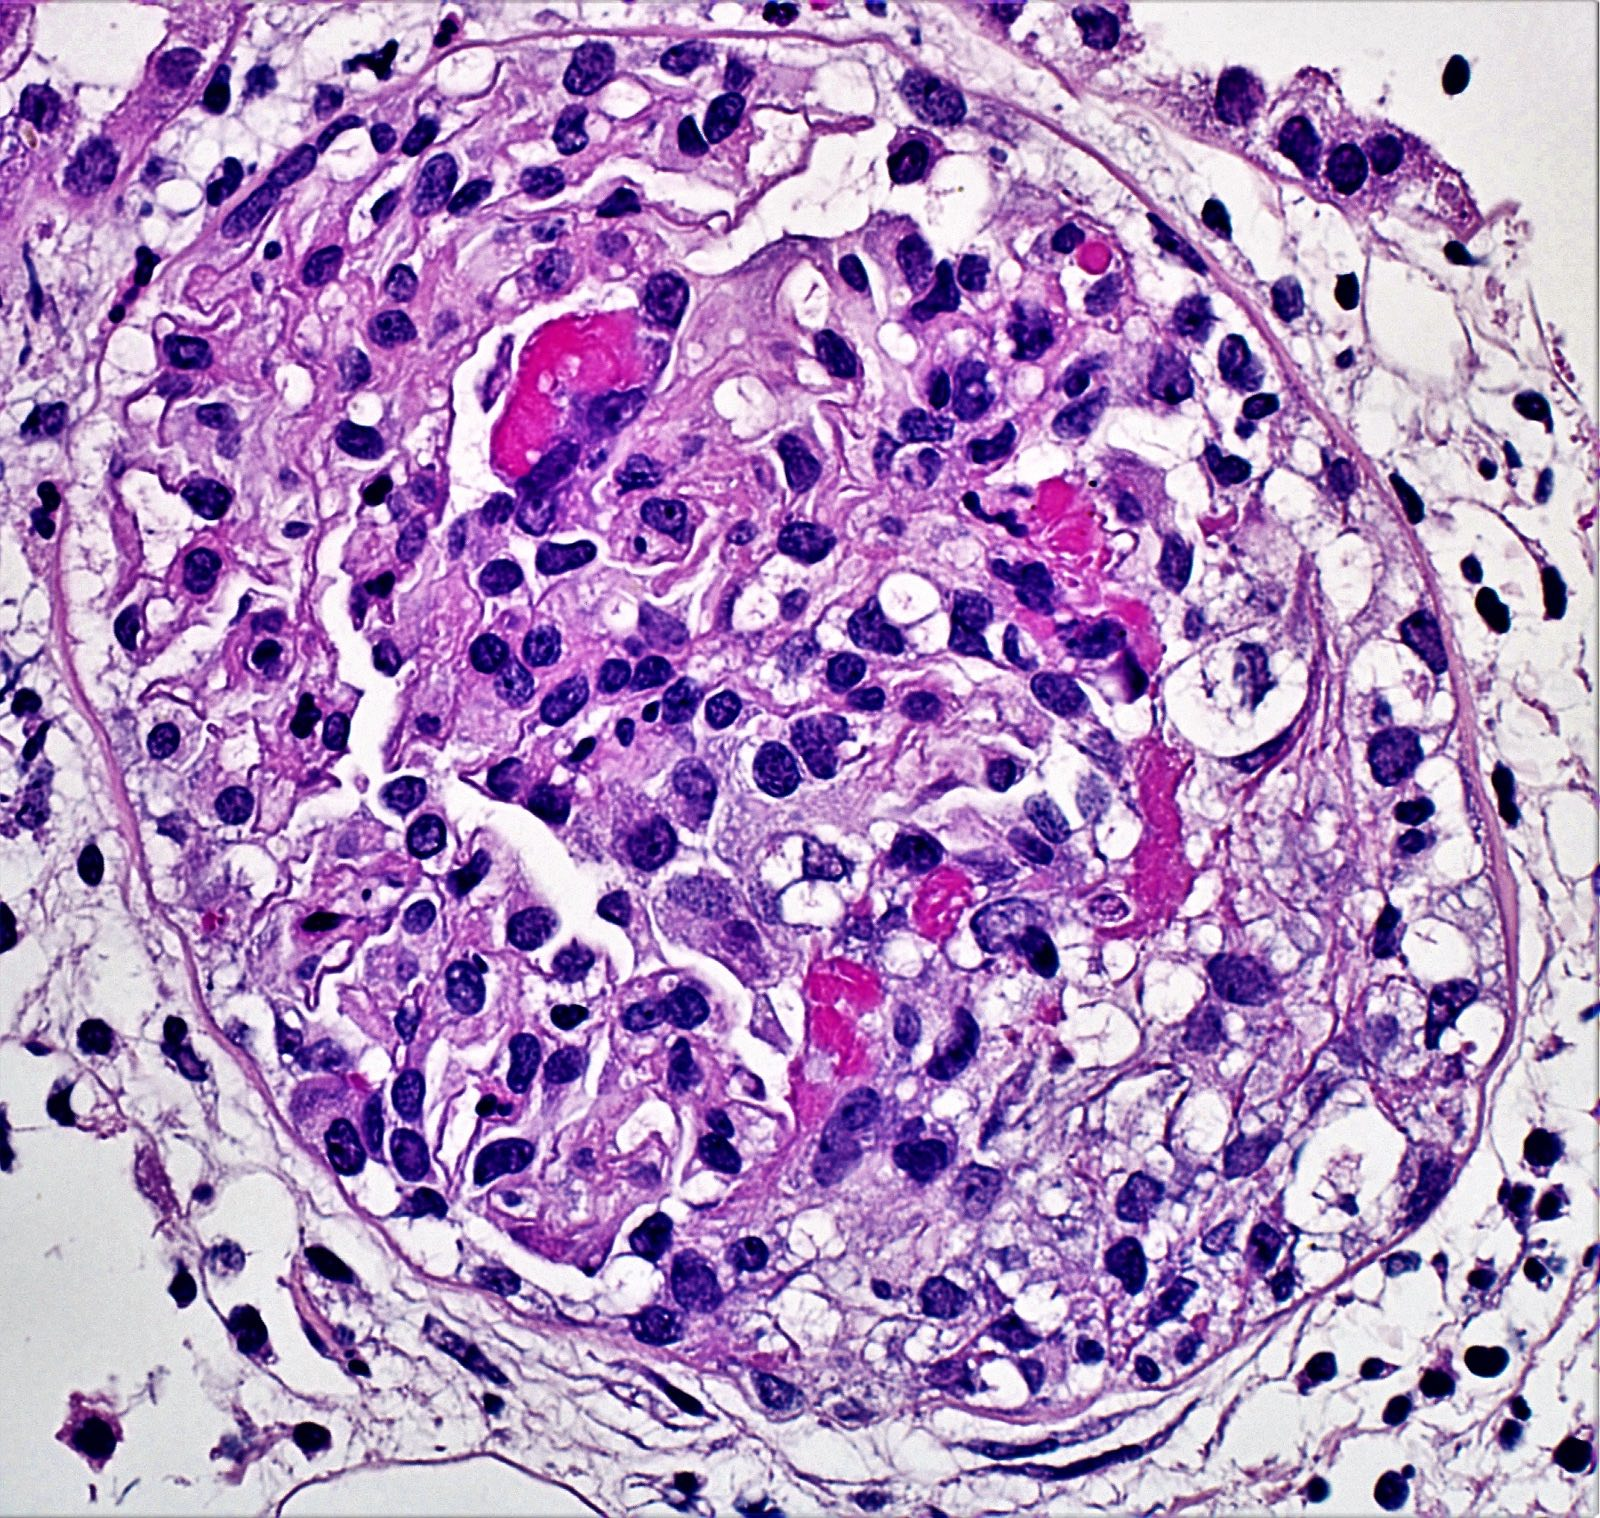 Cellular crescent with fibrin